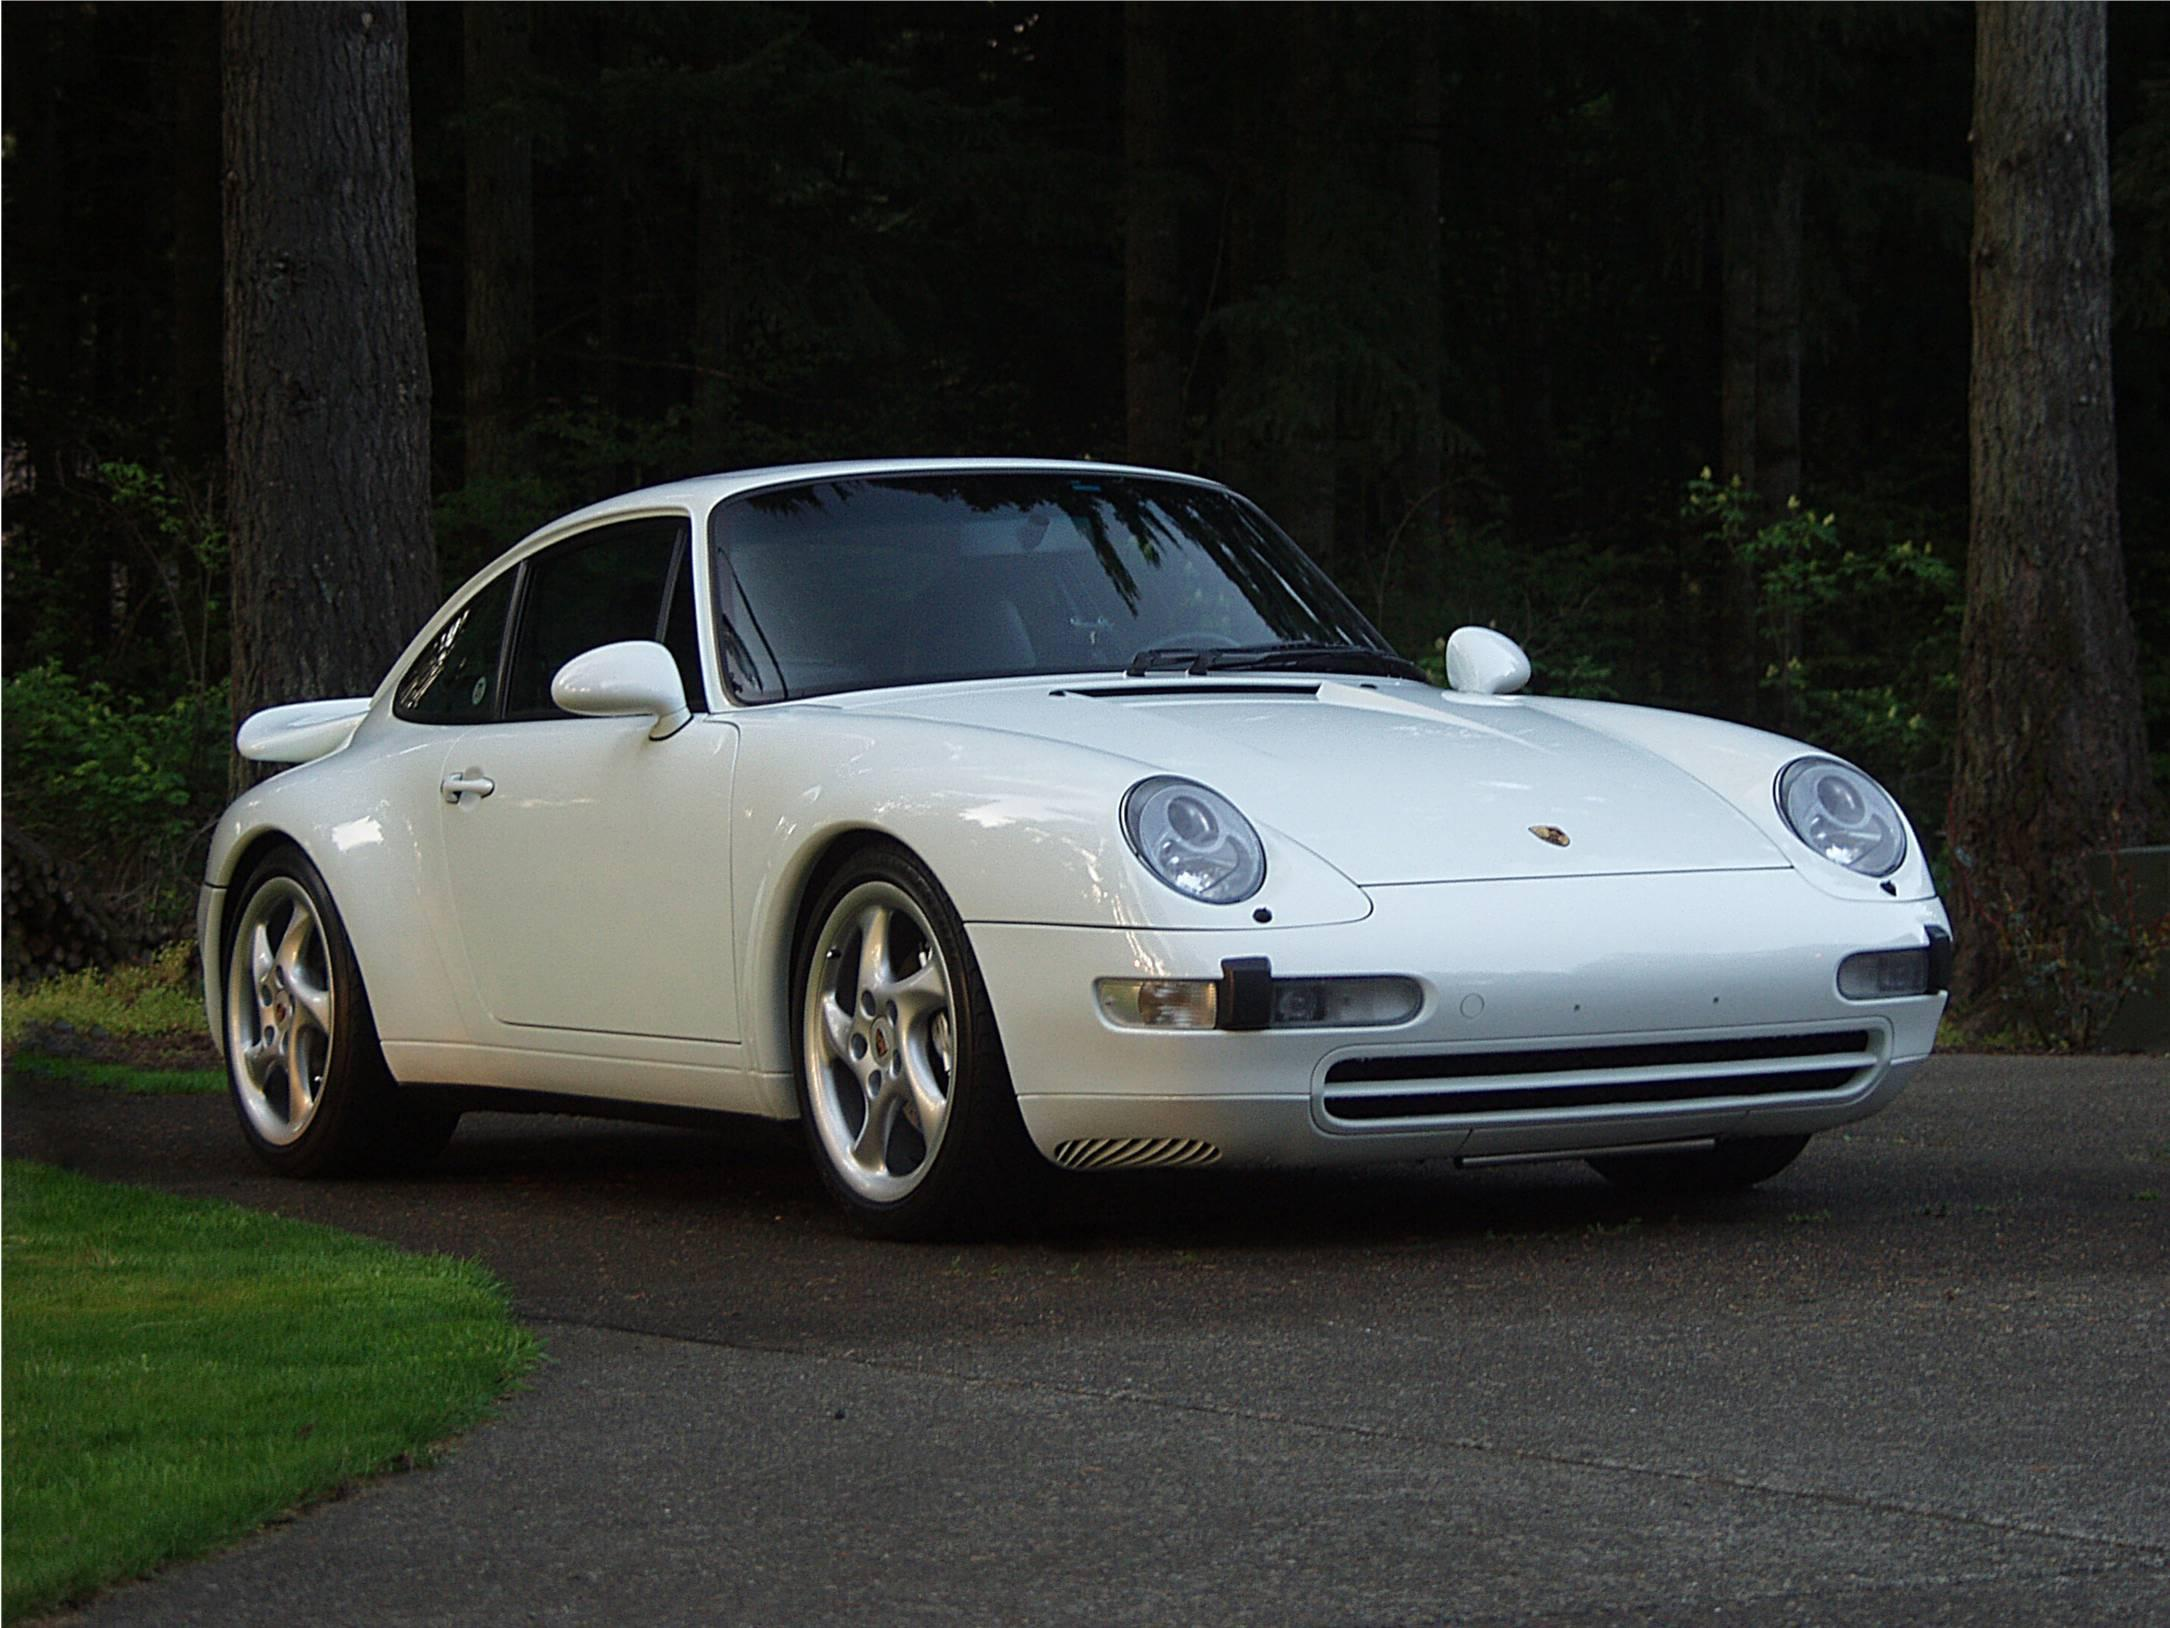 Carrera4_96 1996 Porsche 911 Specs, Photos, Modification